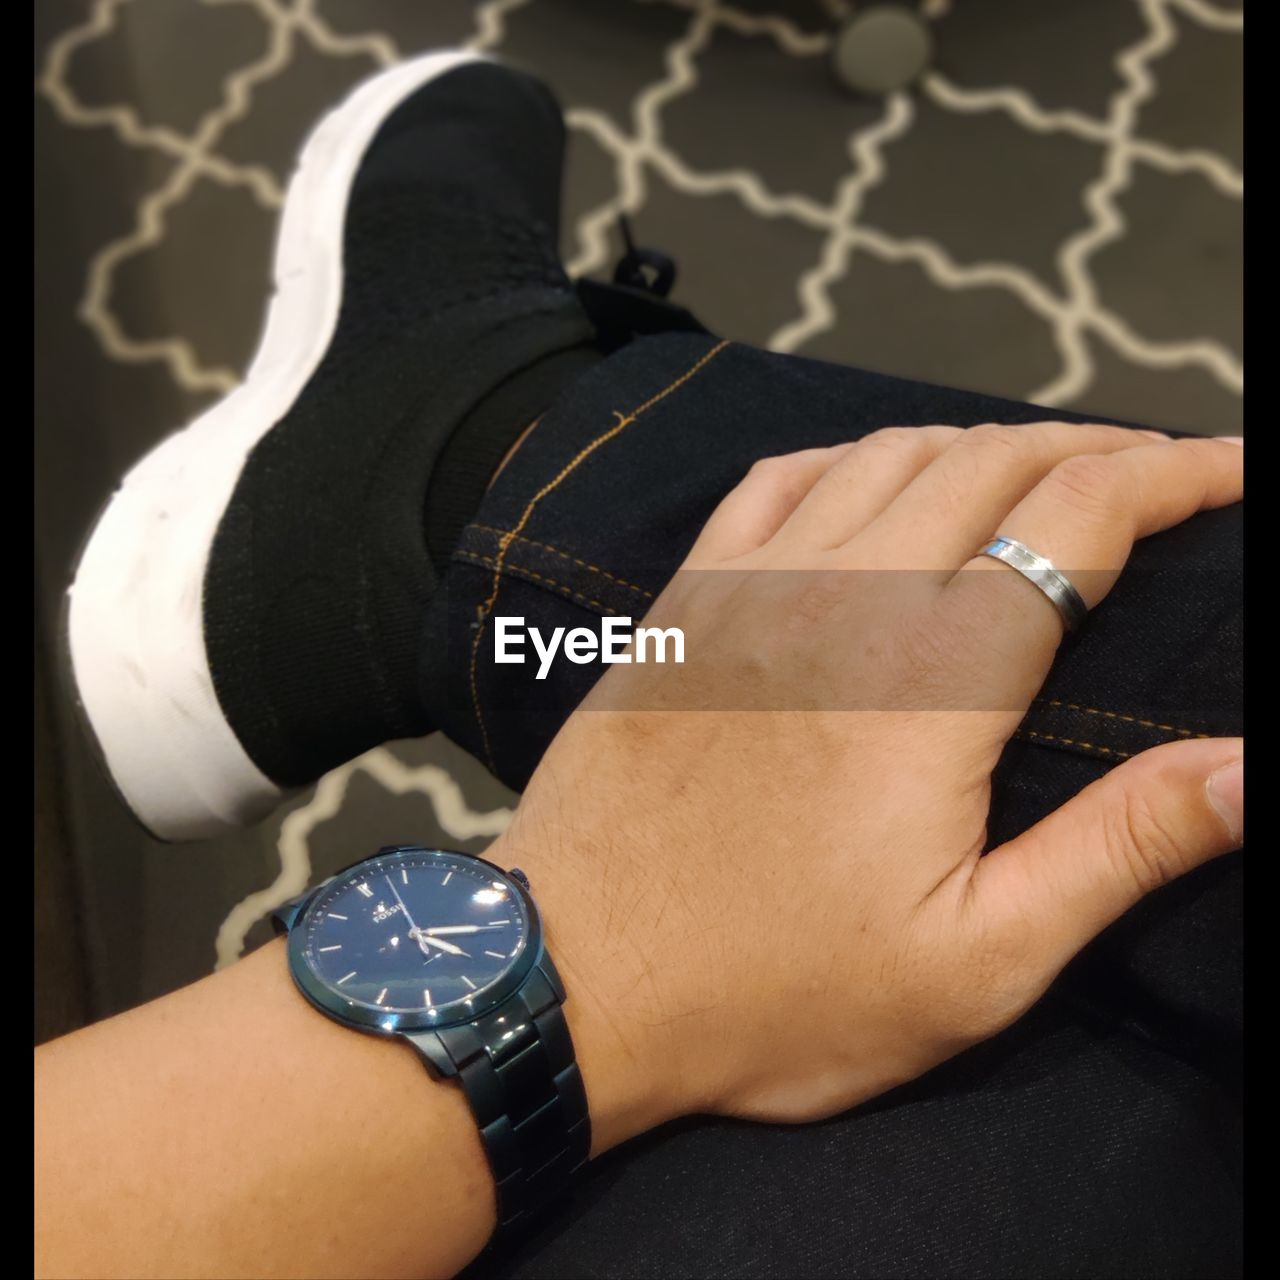 human body part, real people, human hand, hand, body part, adult, one person, women, men, jewelry, wristwatch, time, watch, human leg, indoors, low section, lifestyles, ring, high angle view, finger, human limb